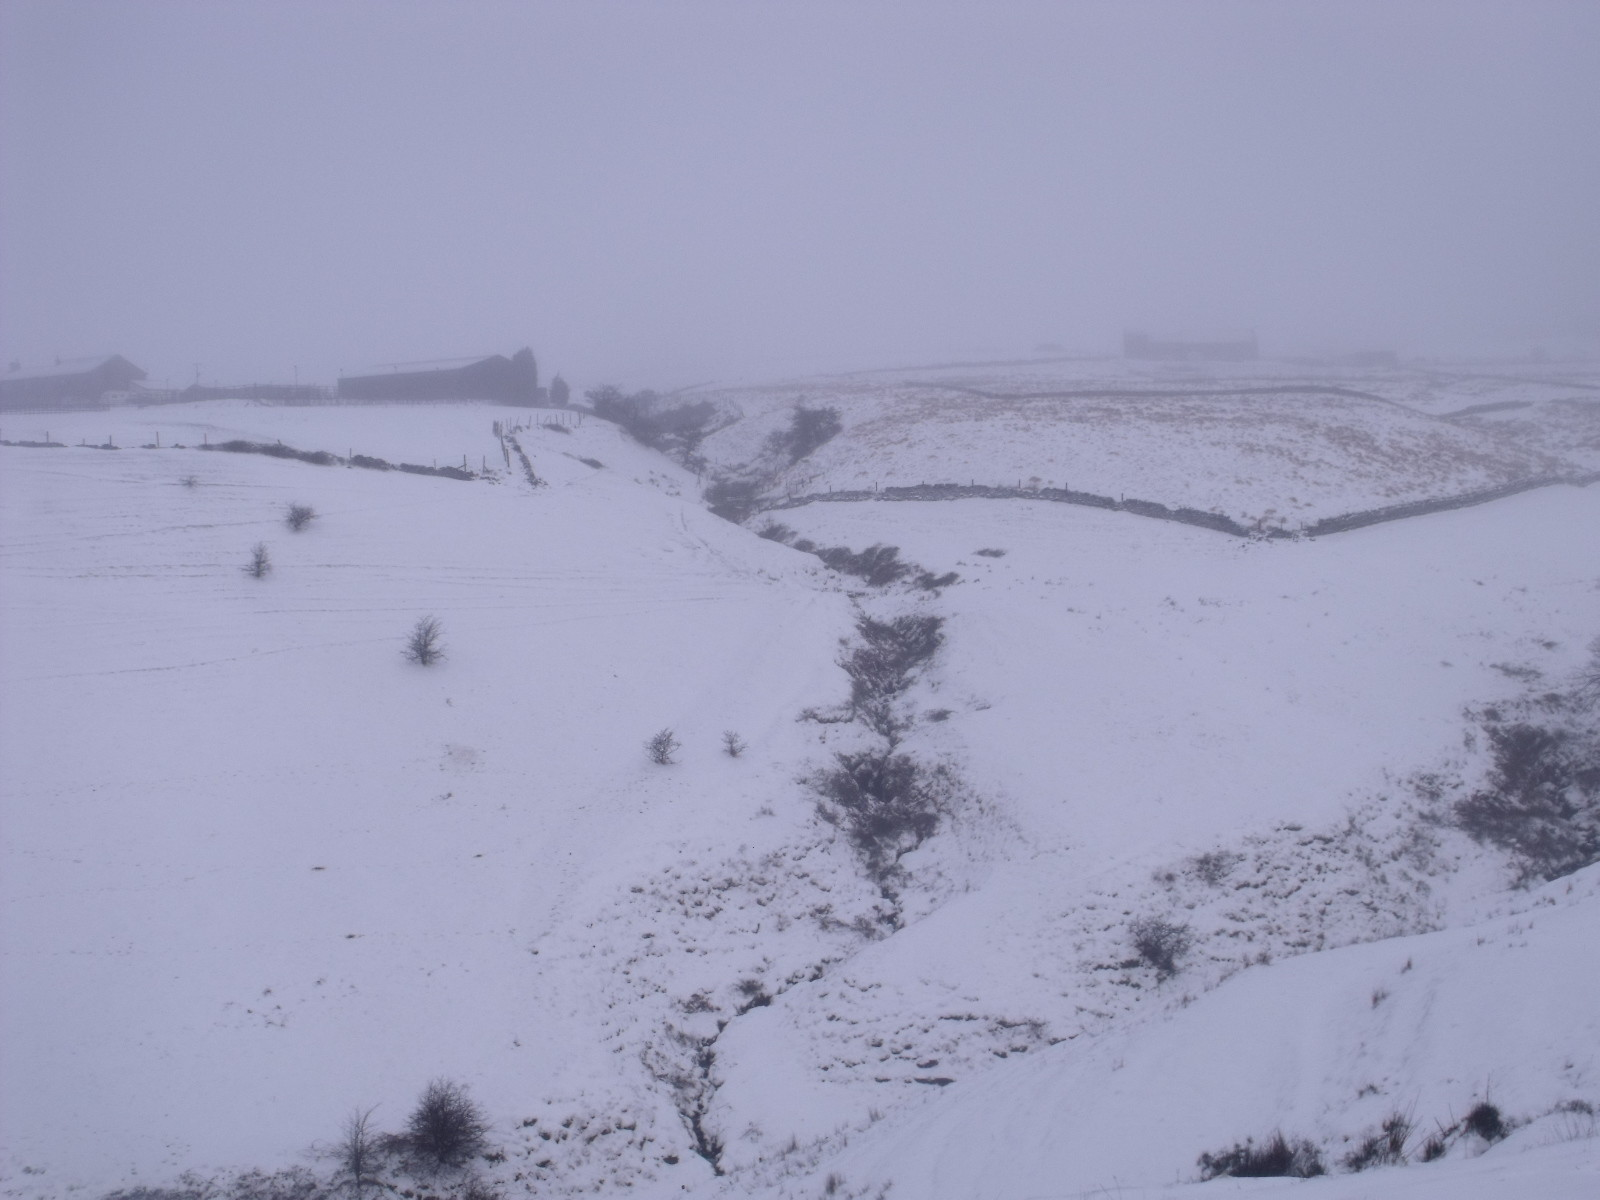 Bacup snow Feb 5th 2012